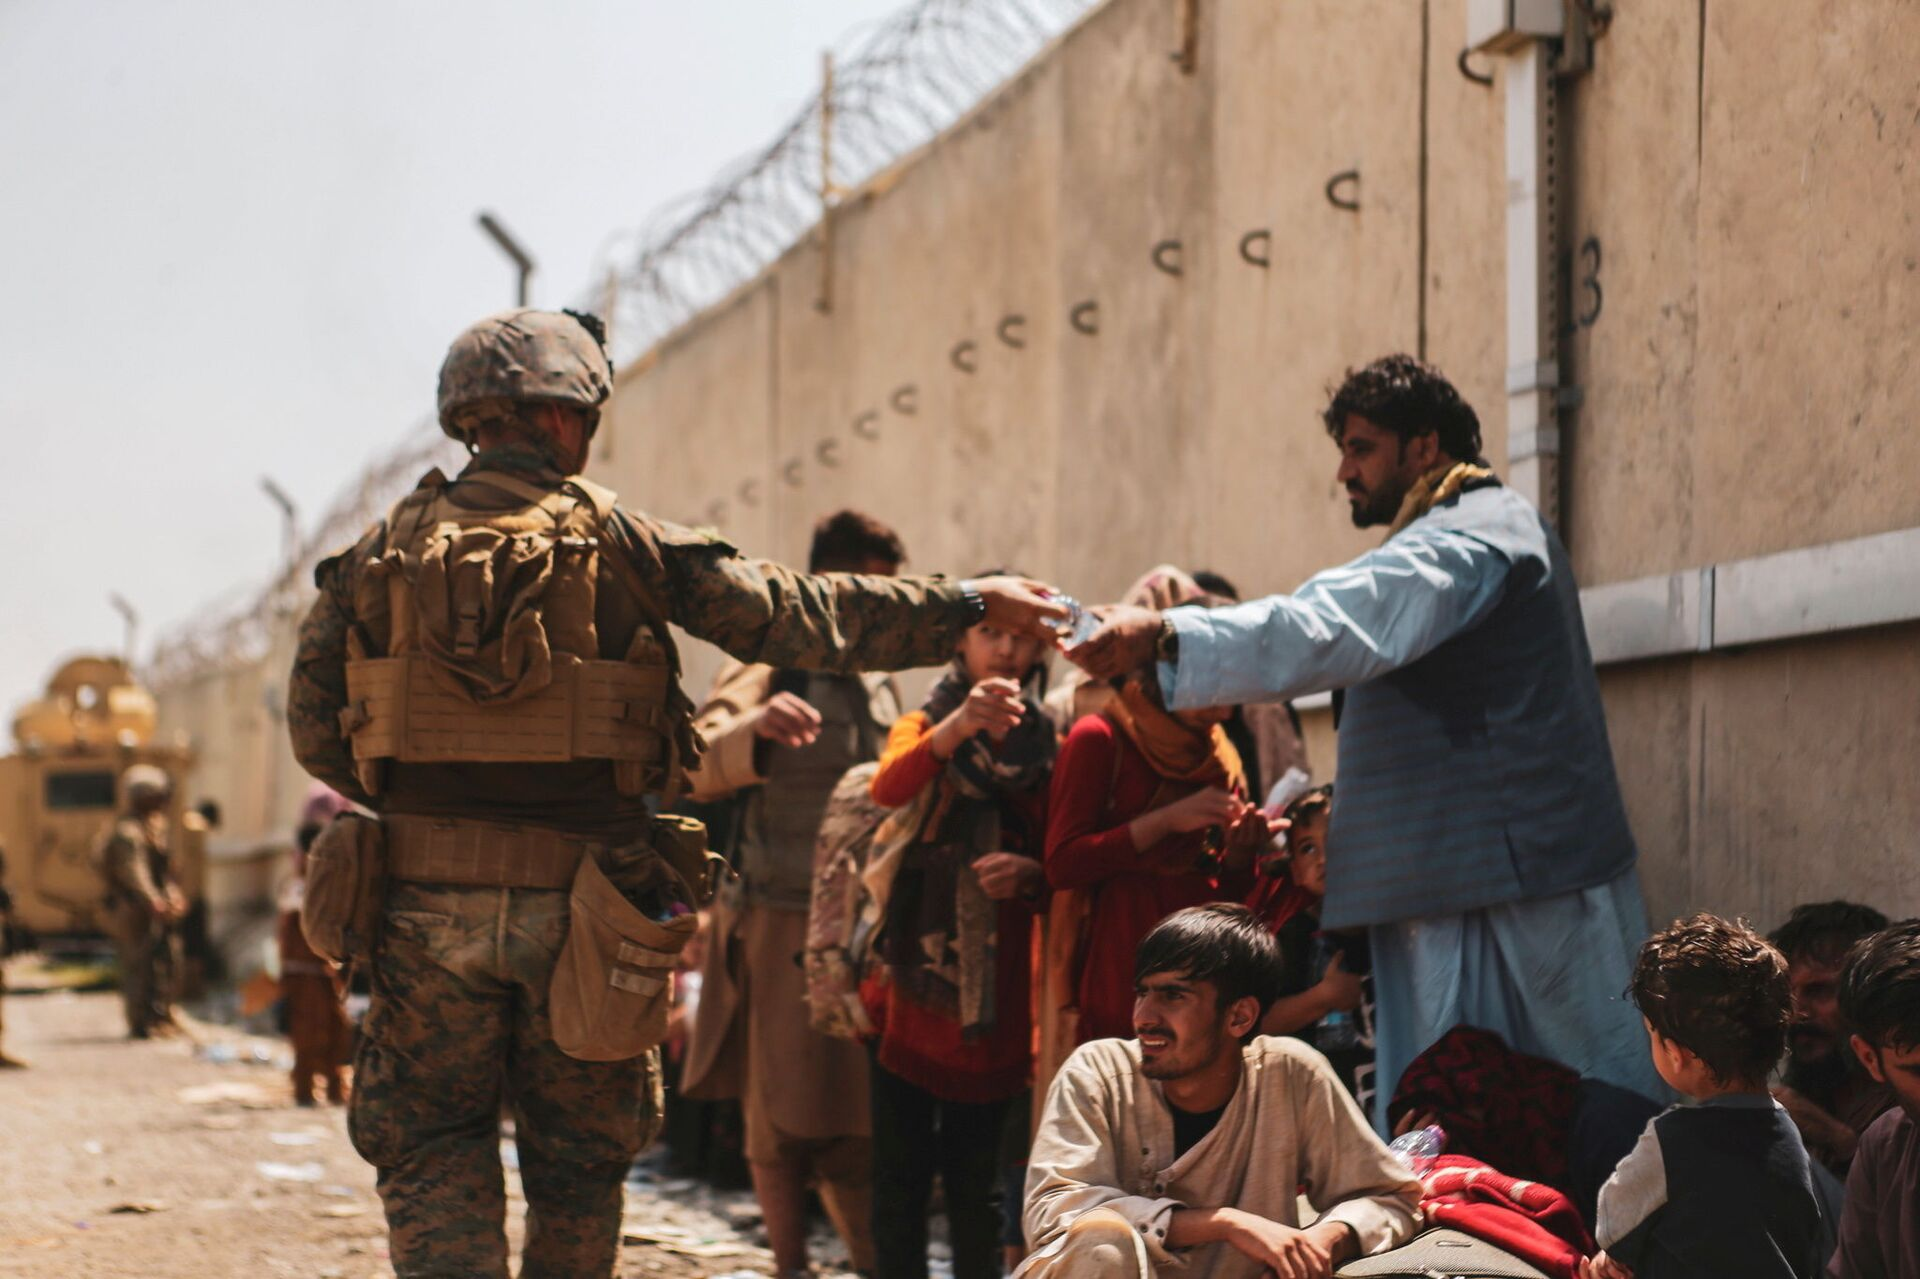 A US Marine passes out water to evacuees during an evacuation at Hamid Karzai International Airport, Kabul, Afghanistan, August 22, 2021 - Sputnik International, 1920, 07.09.2021